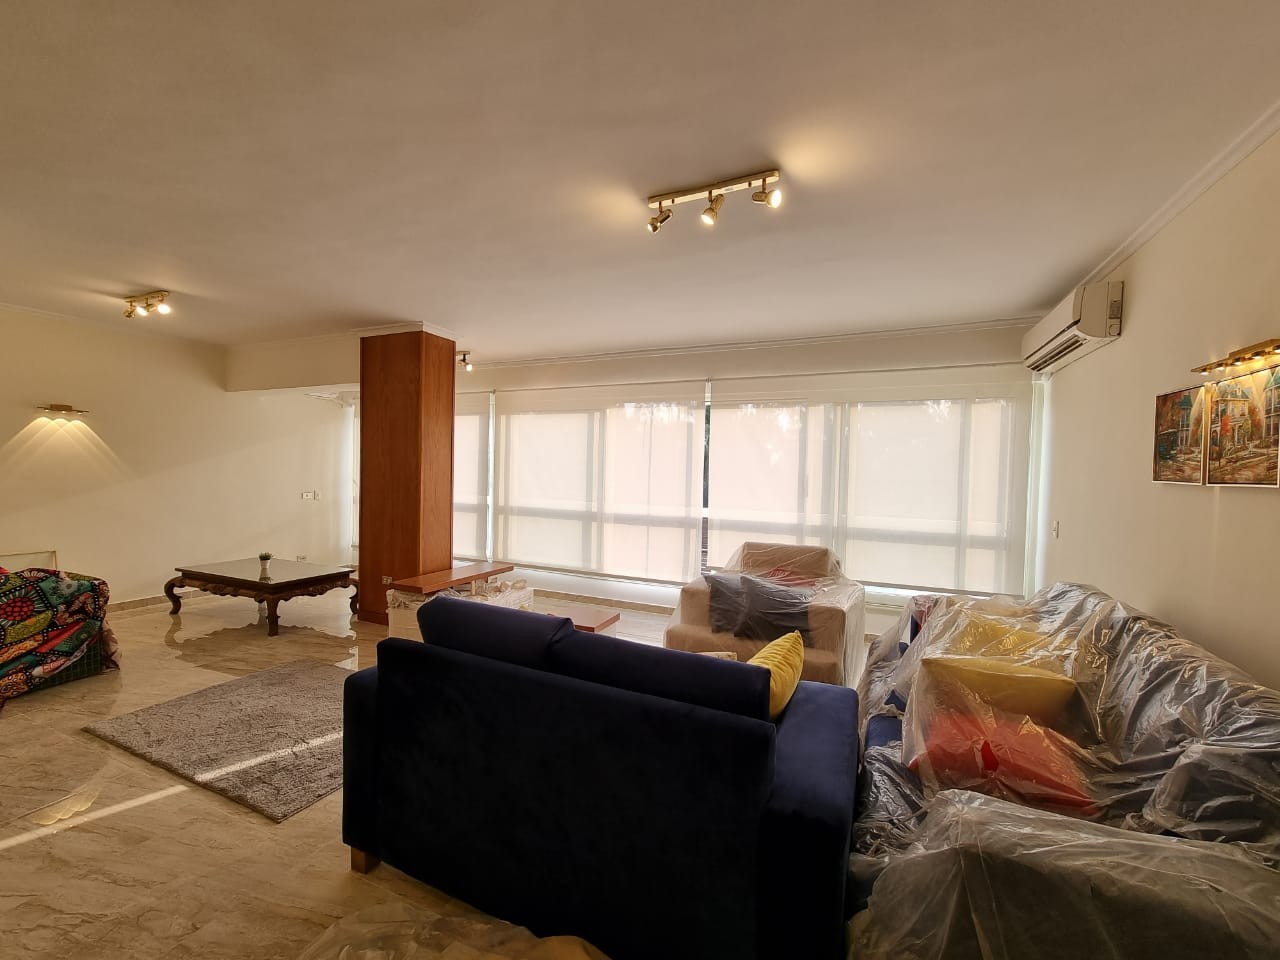 Cozy Modern Furnished Studio Apartment For Rent Located In Sarayat El Maadi - 4882 Featured Image